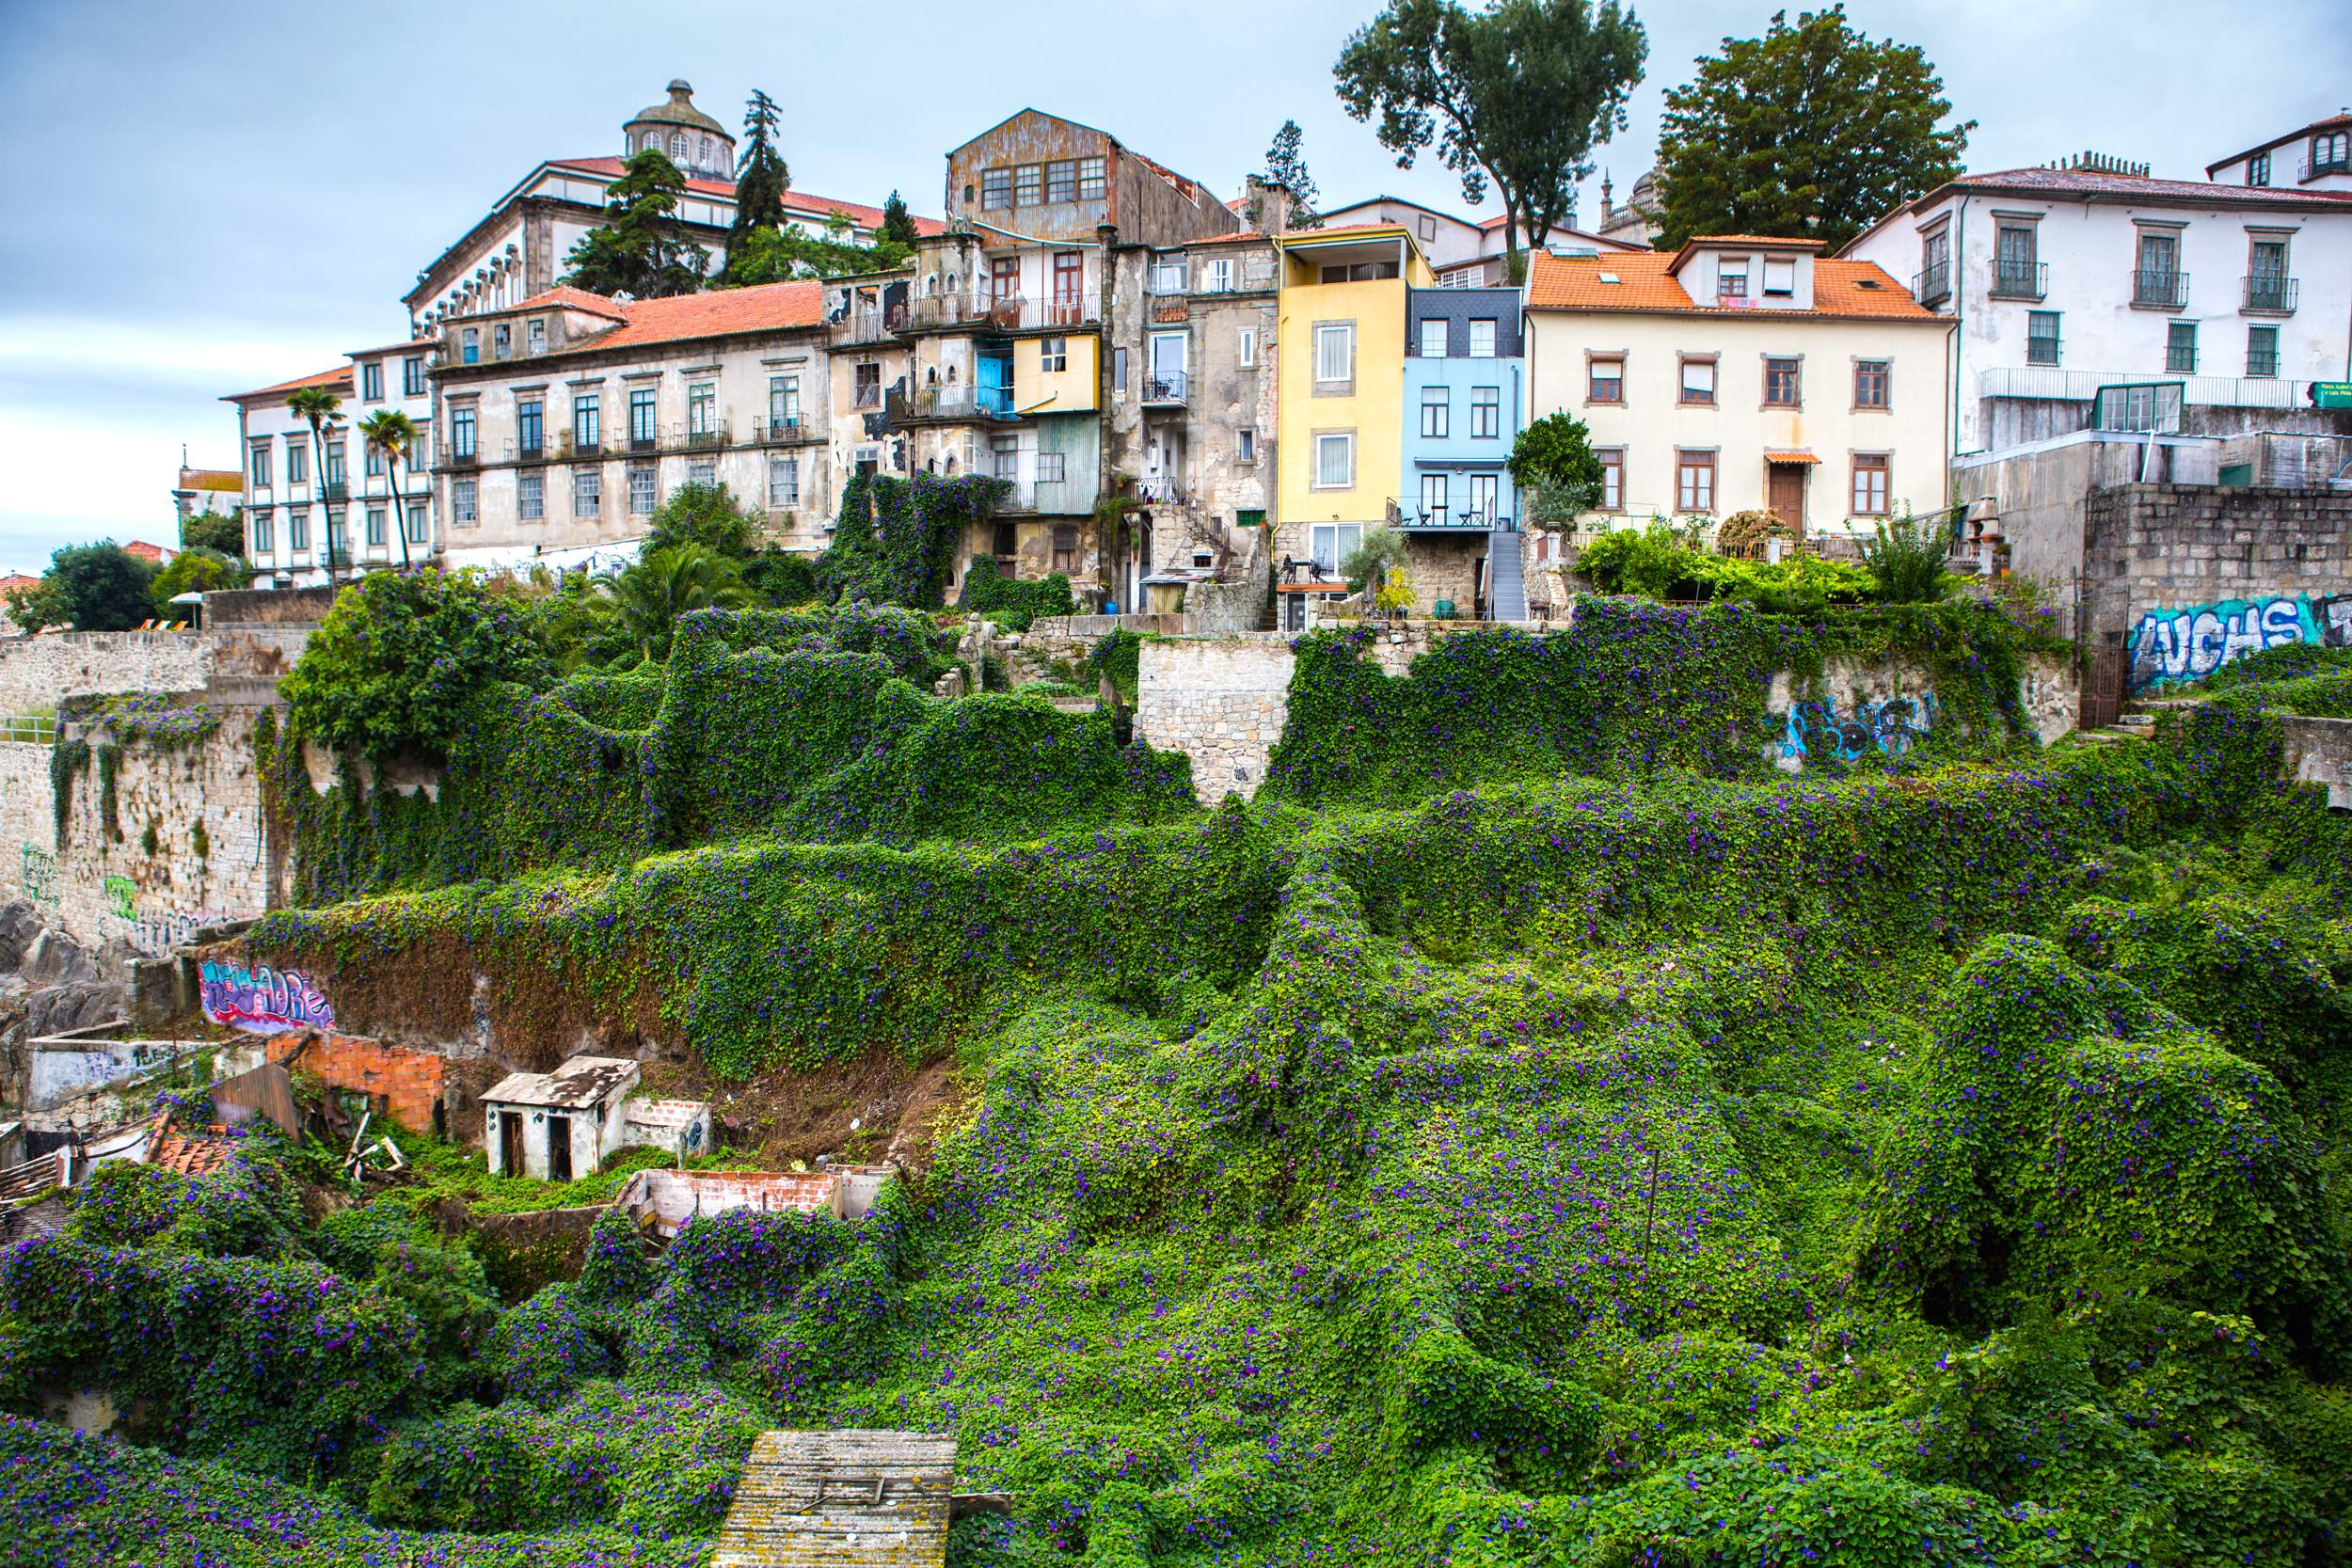 Green creepers covering the ruined parts of Porto with intact buildings above them